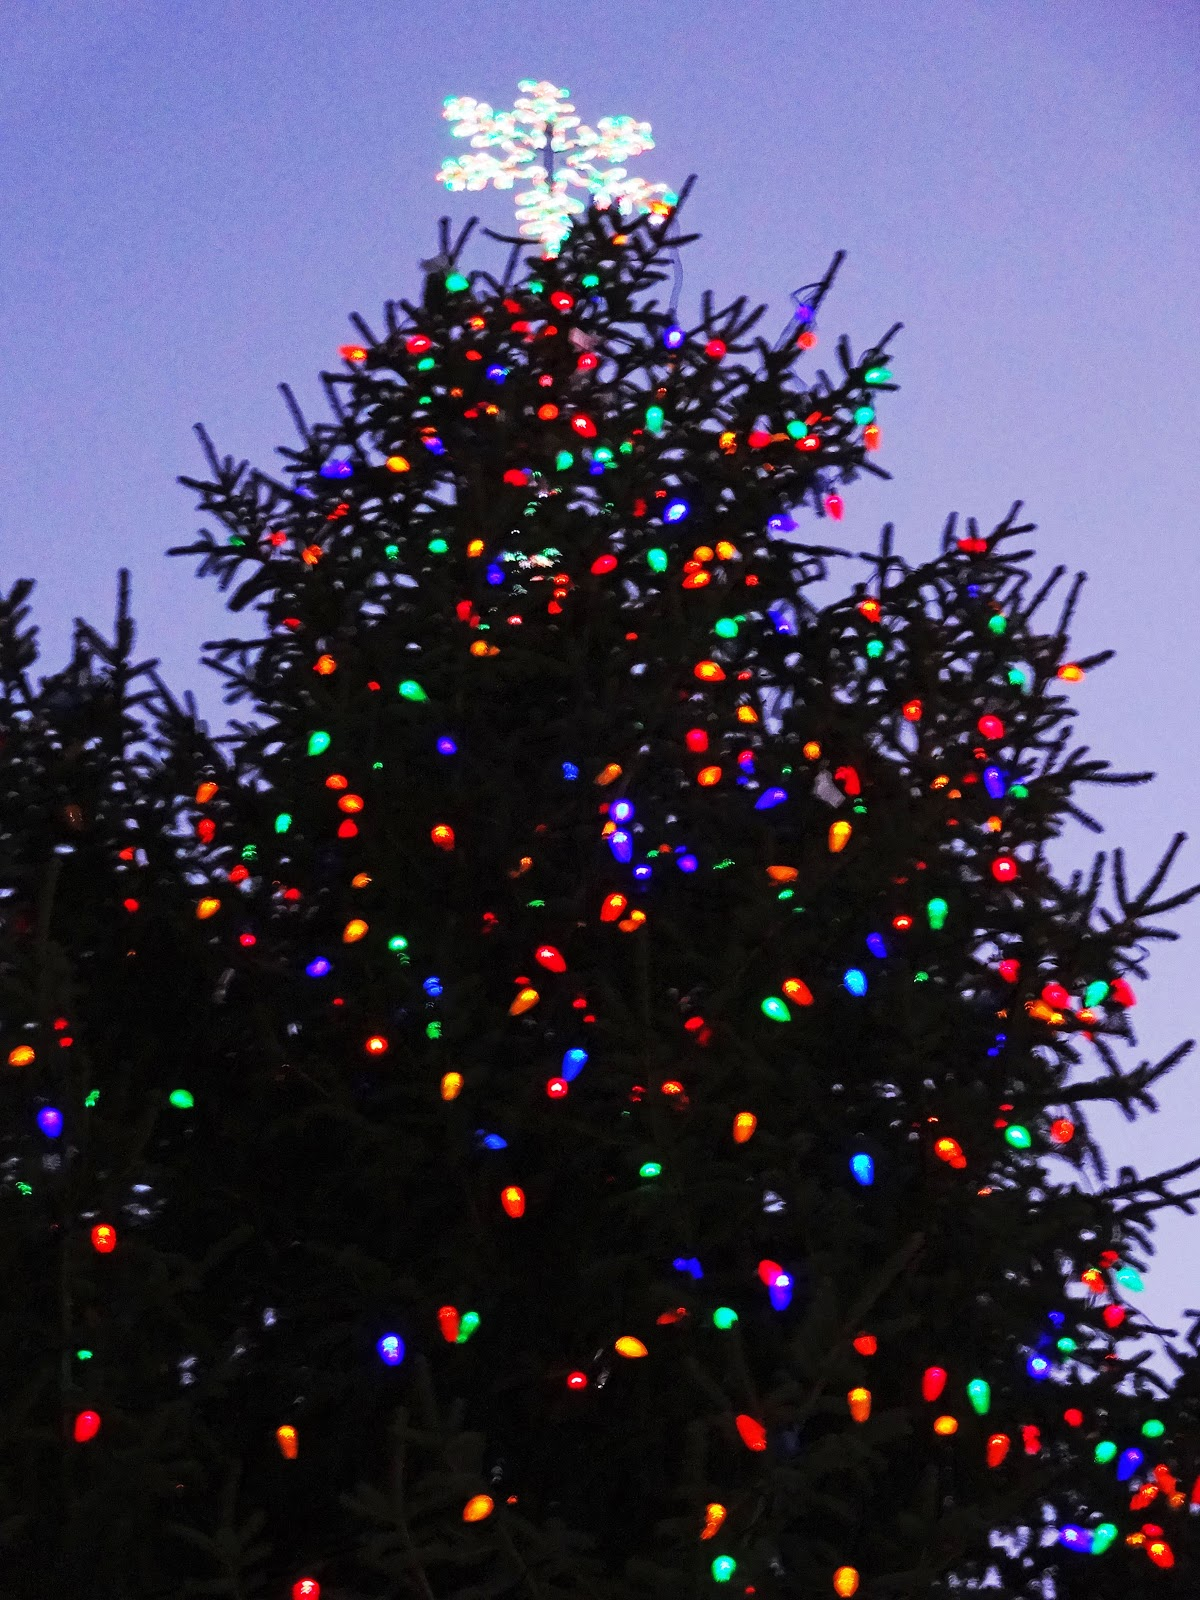 The star topper on the Boise City Tree. This weekend we\u0027re going to sip hot chocolate under the tree at the statehouse. It\u0027s a beautiful tree too.  sc 1 st  Boise Daily Photo & Boise Daily Photo: 2012